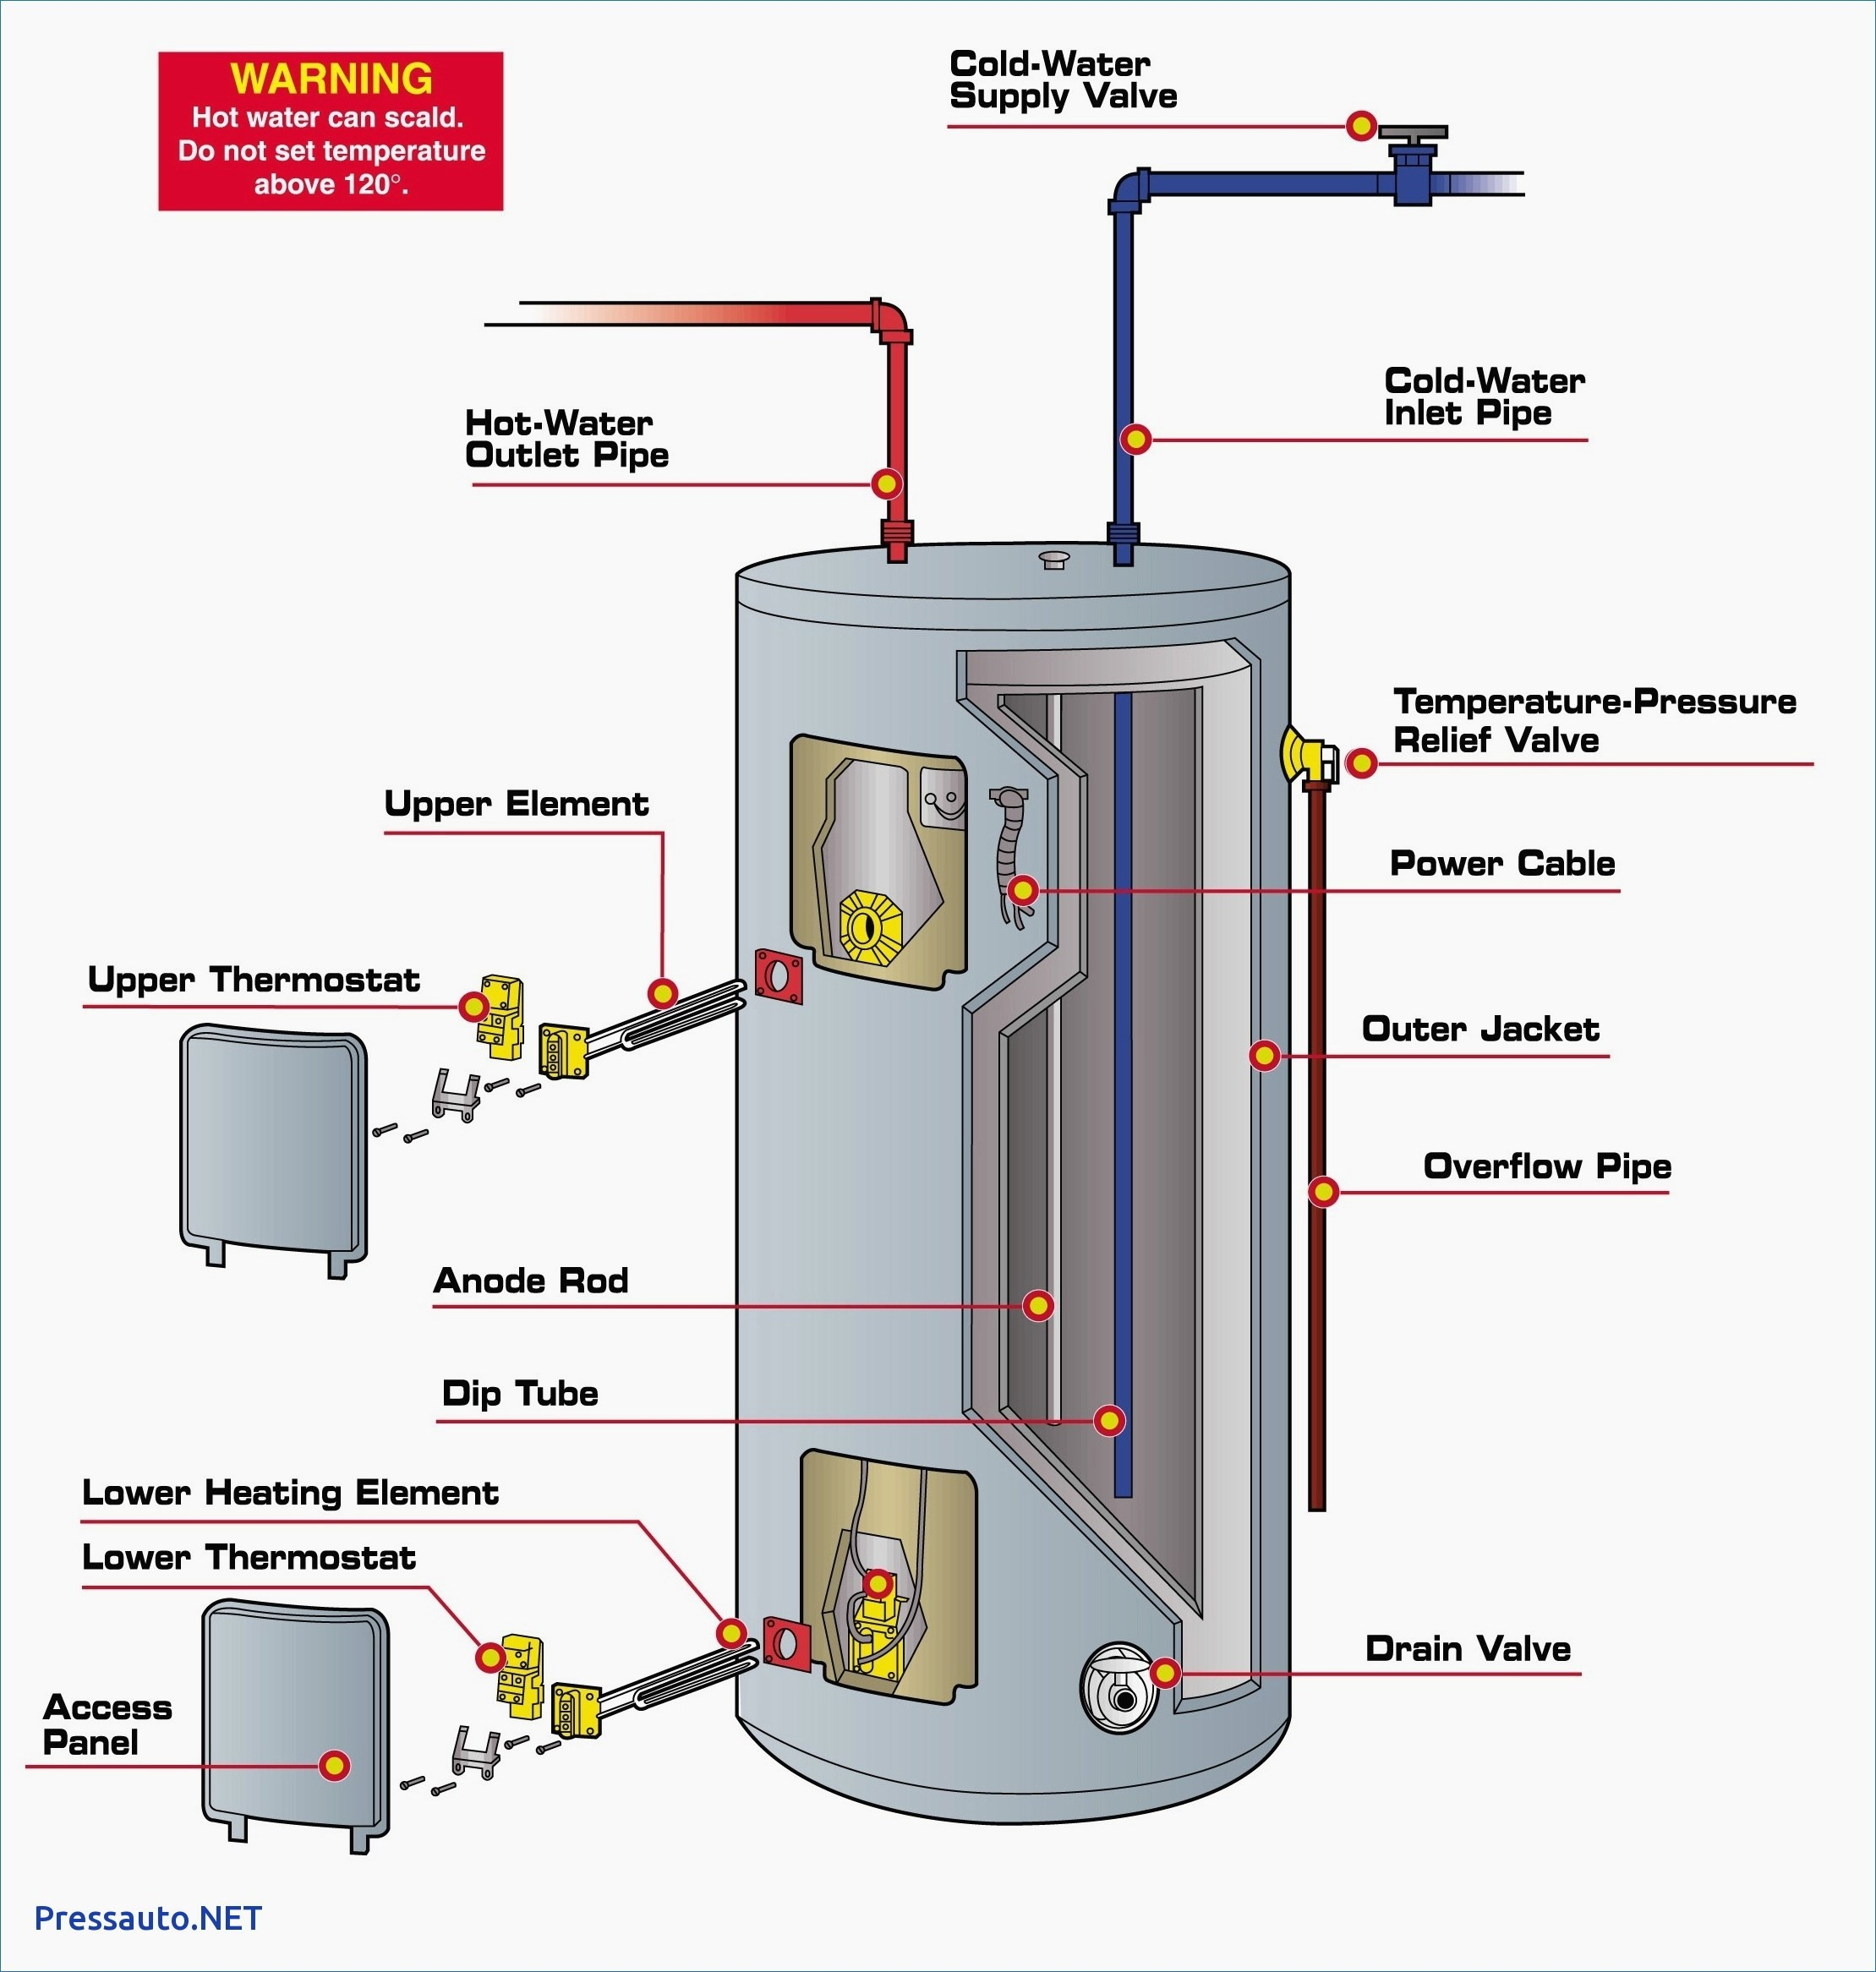 electric hot water tank wiring diagram Download-Wiring Diagram Electric Water Heater Fresh New Hot Water Heater Wiring Diagram Diagram 5-r